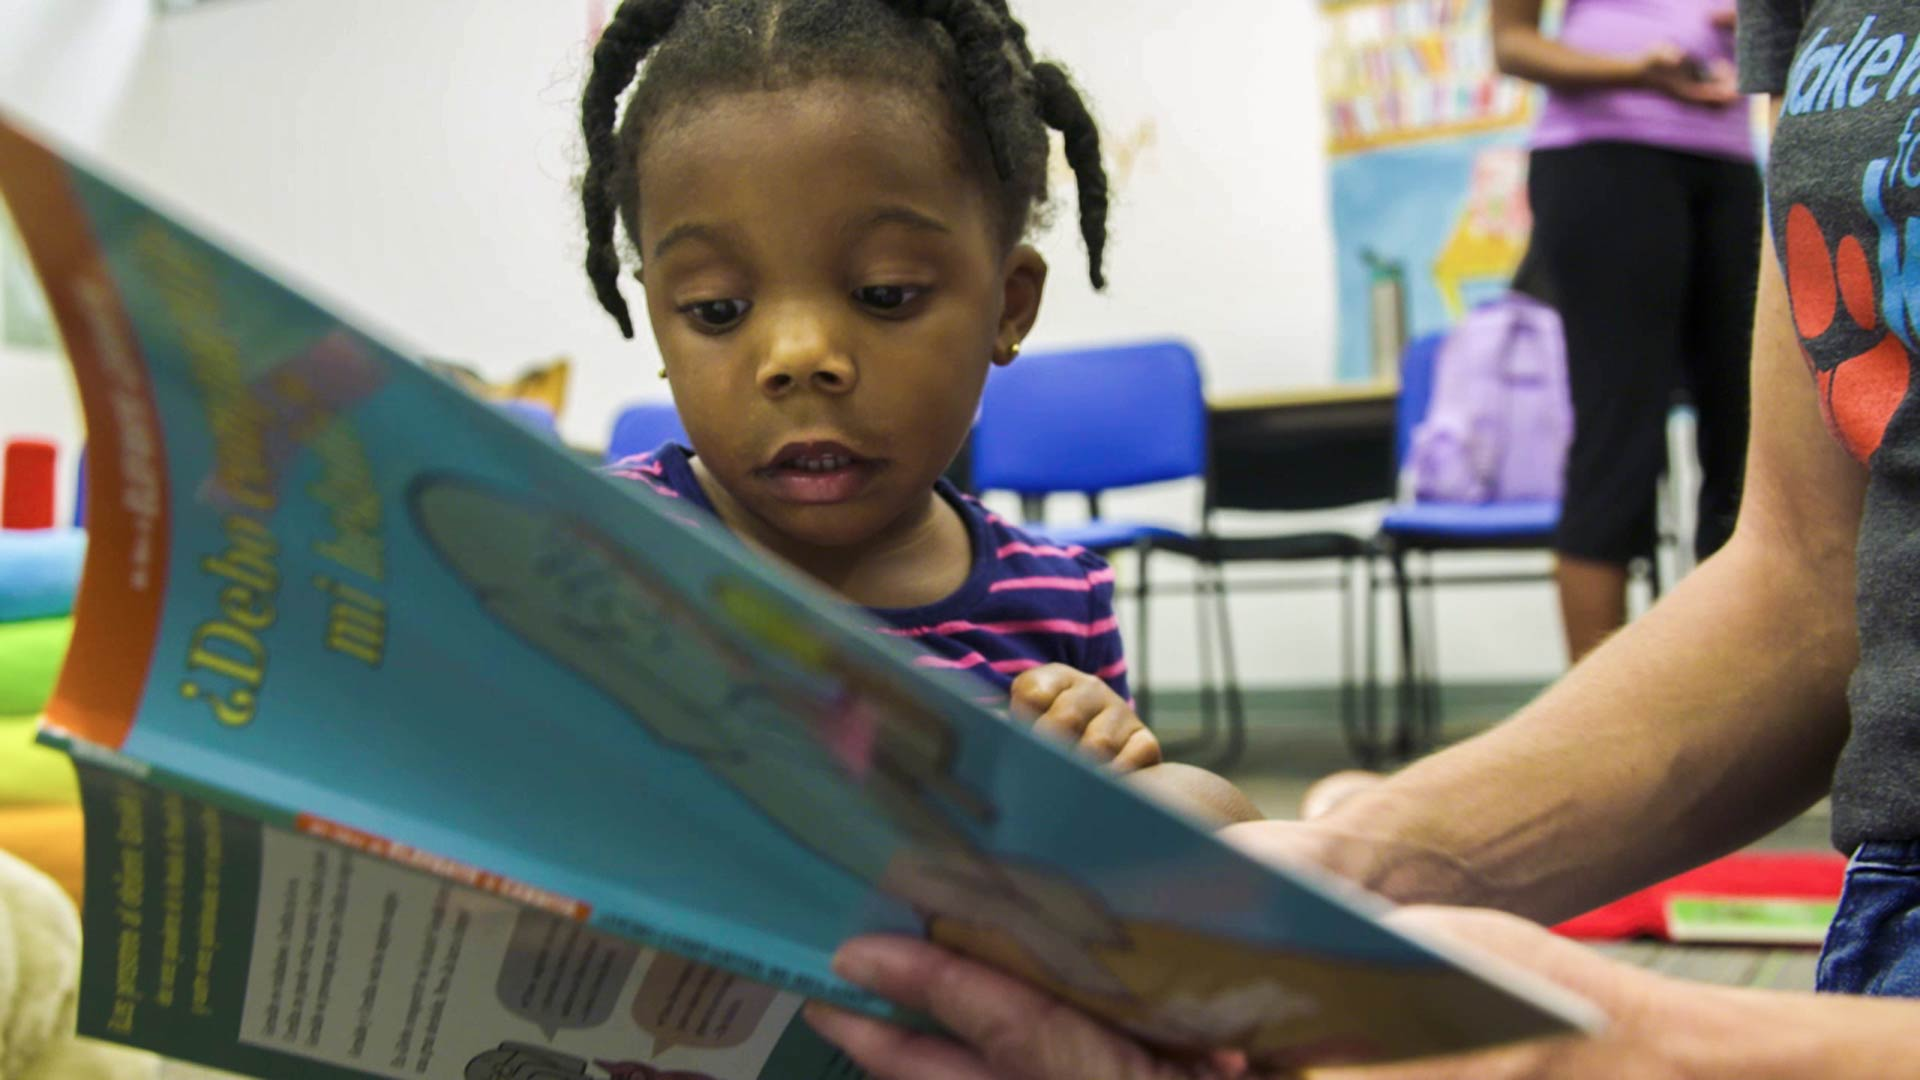 Make Way for Books aims to improve access to high-quality early-childhood education.